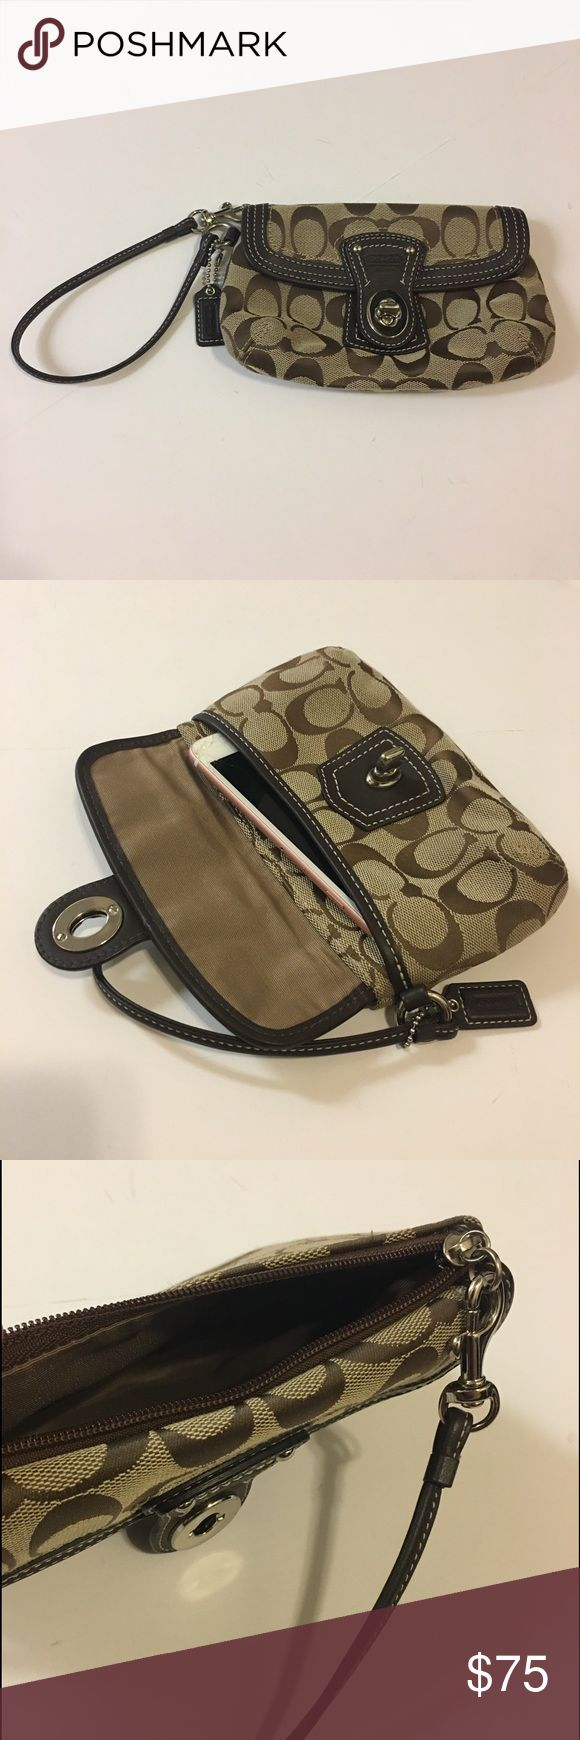 Coach Wristlet Cell Phone Holder Purse Mini Bag Super chic Coach wristlet with a pocket and a zipper. Stunning and perfect for all occasions! AUTHENTIC signiture print Coach Bags Clutches & Wristlets